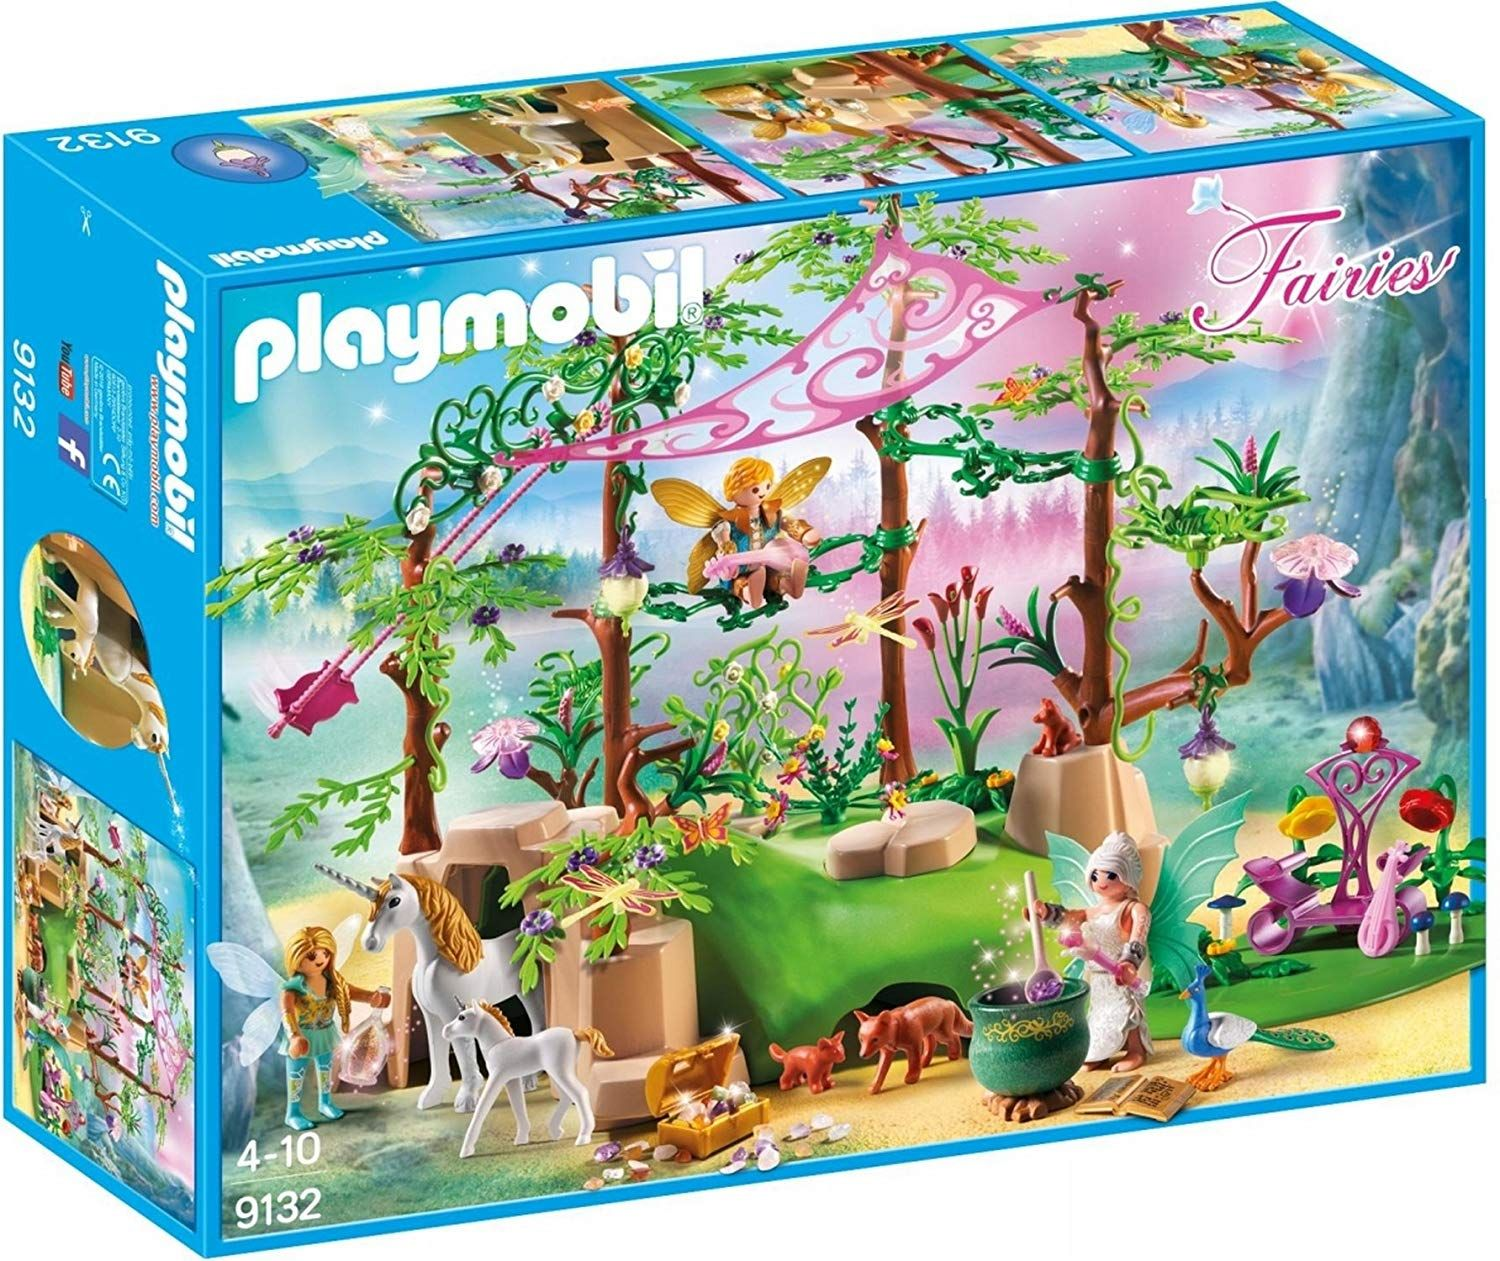 Playmobil Princess 5475 Magic Crystal Lake Top Toys For Girls Age 6 To 8 All The Latest Toys They Re